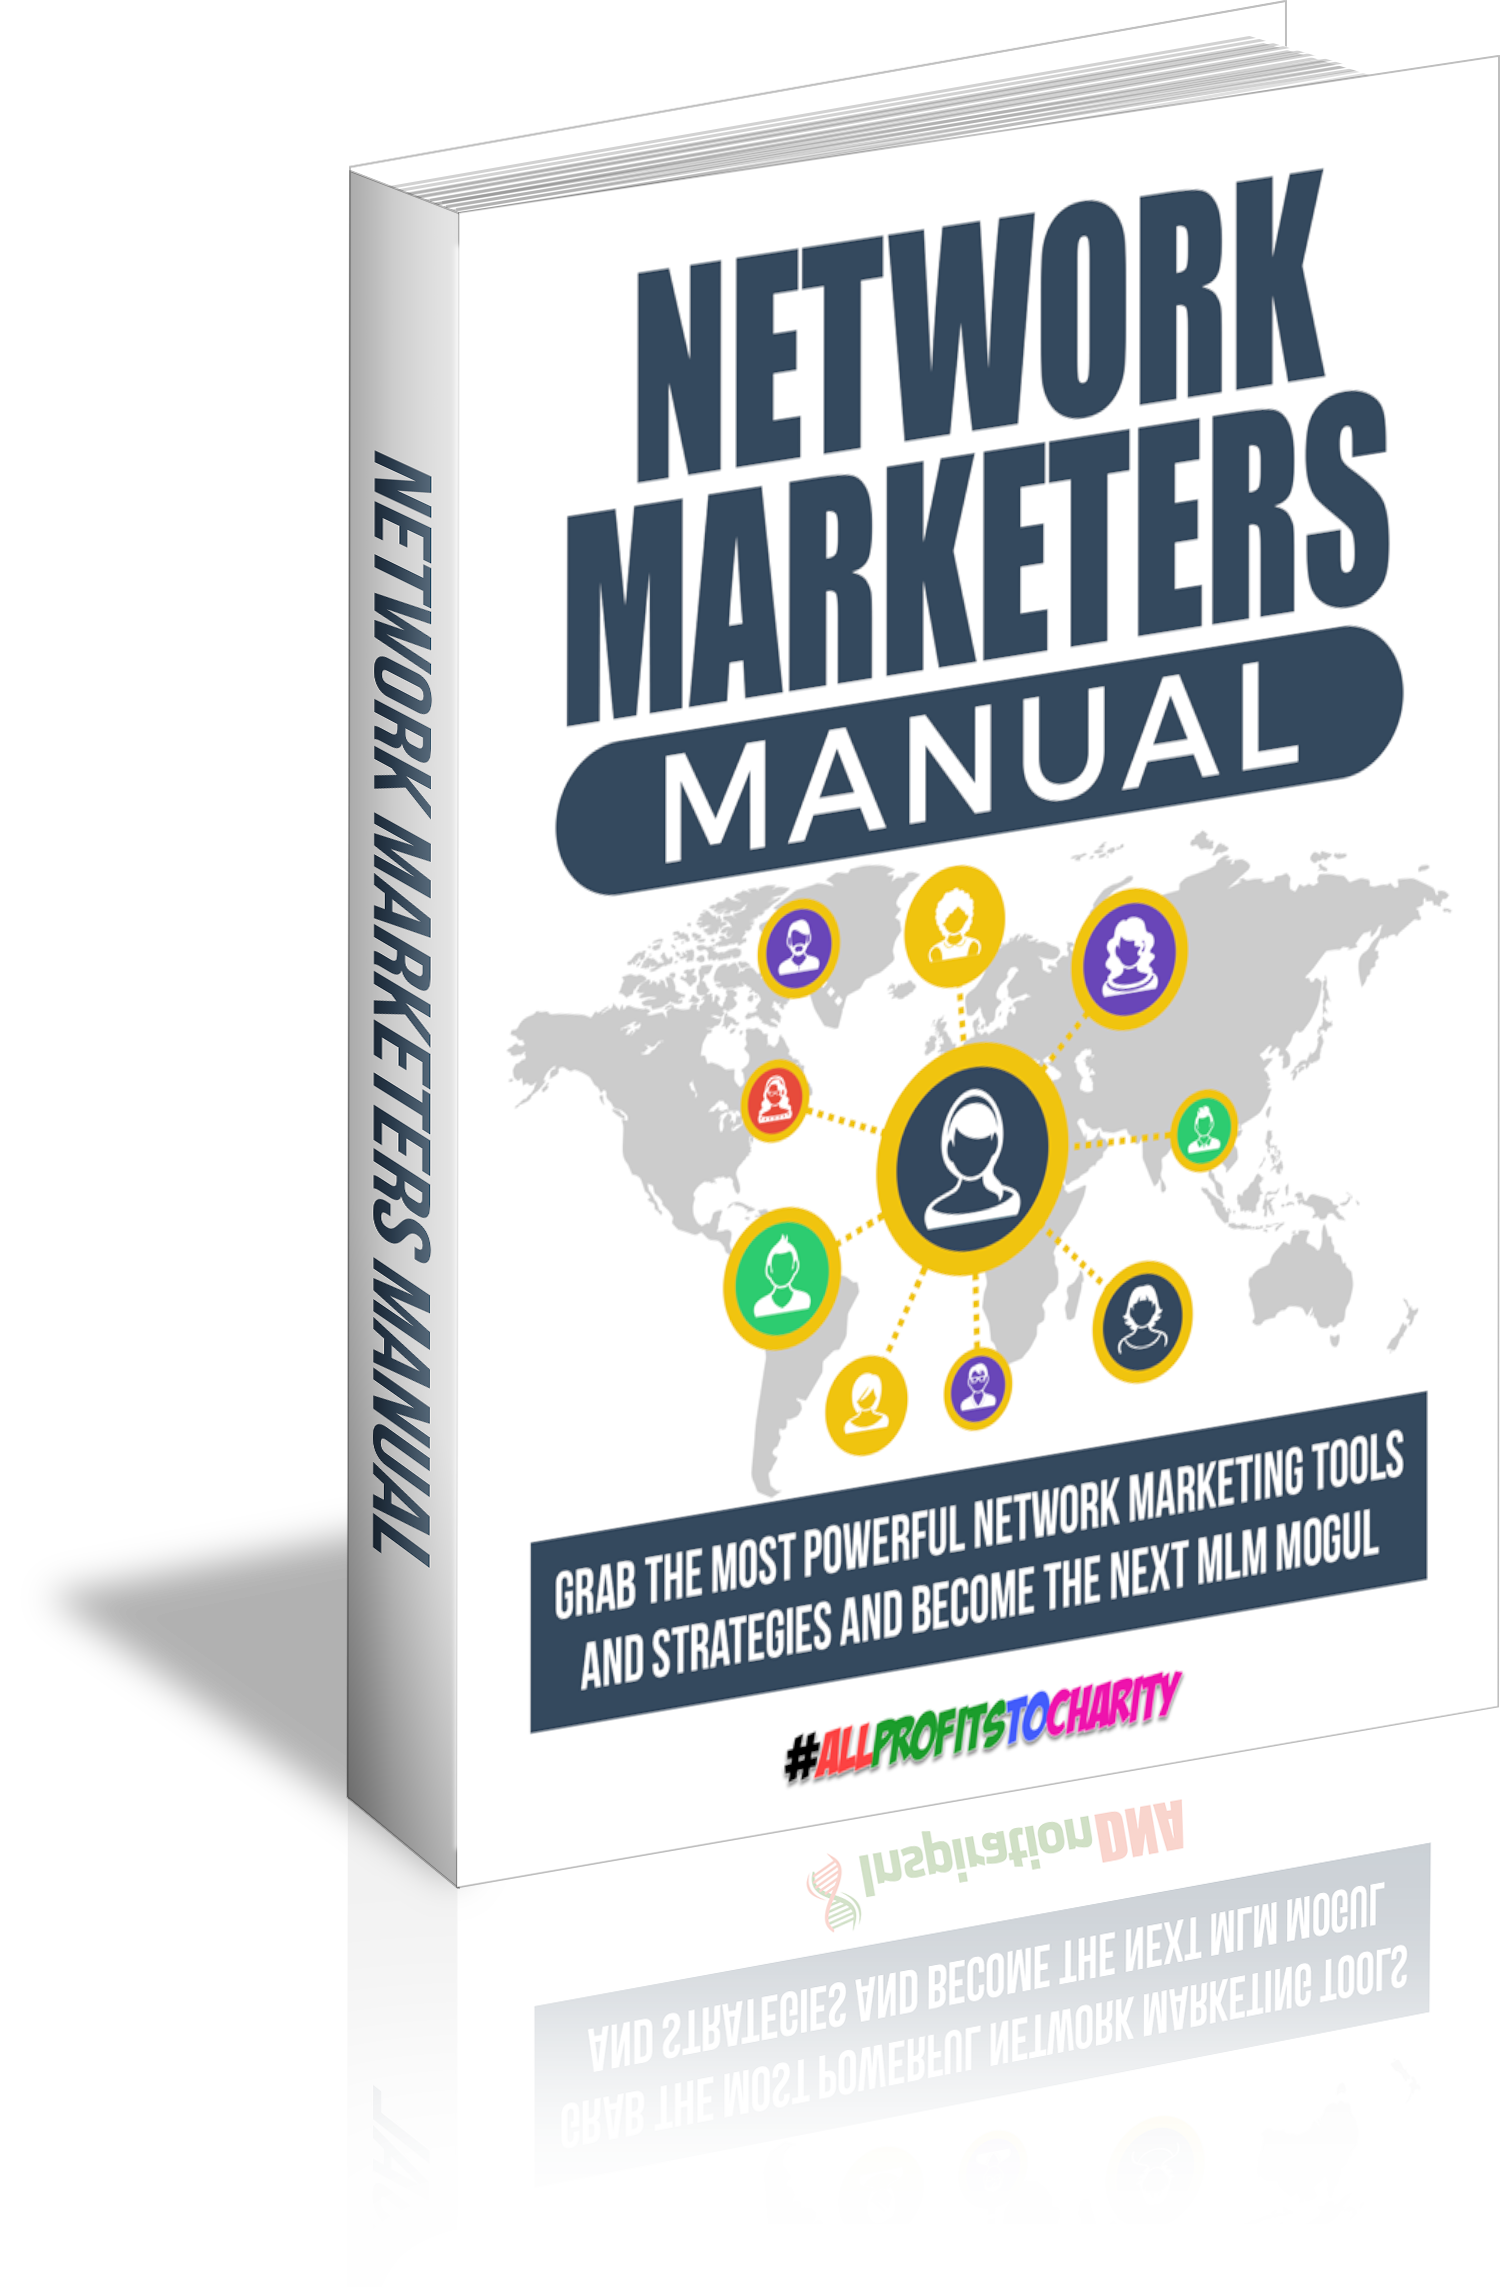 Network Marketers Manual cover